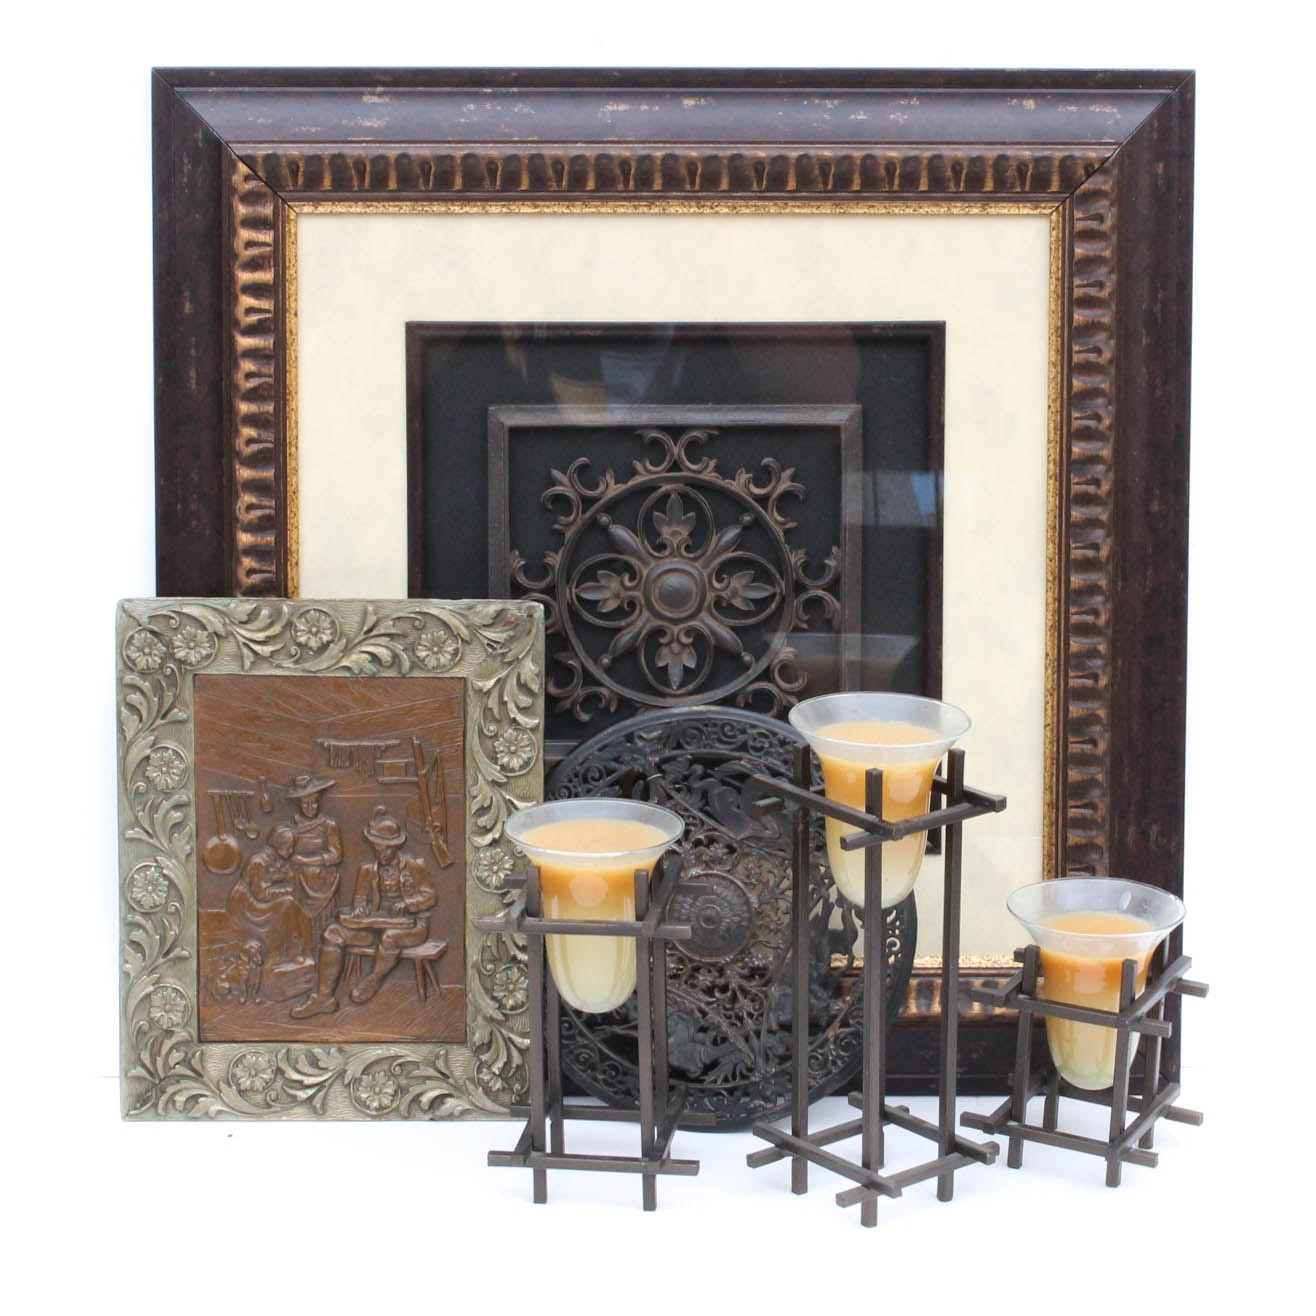 Antique-Style Decor in Metal